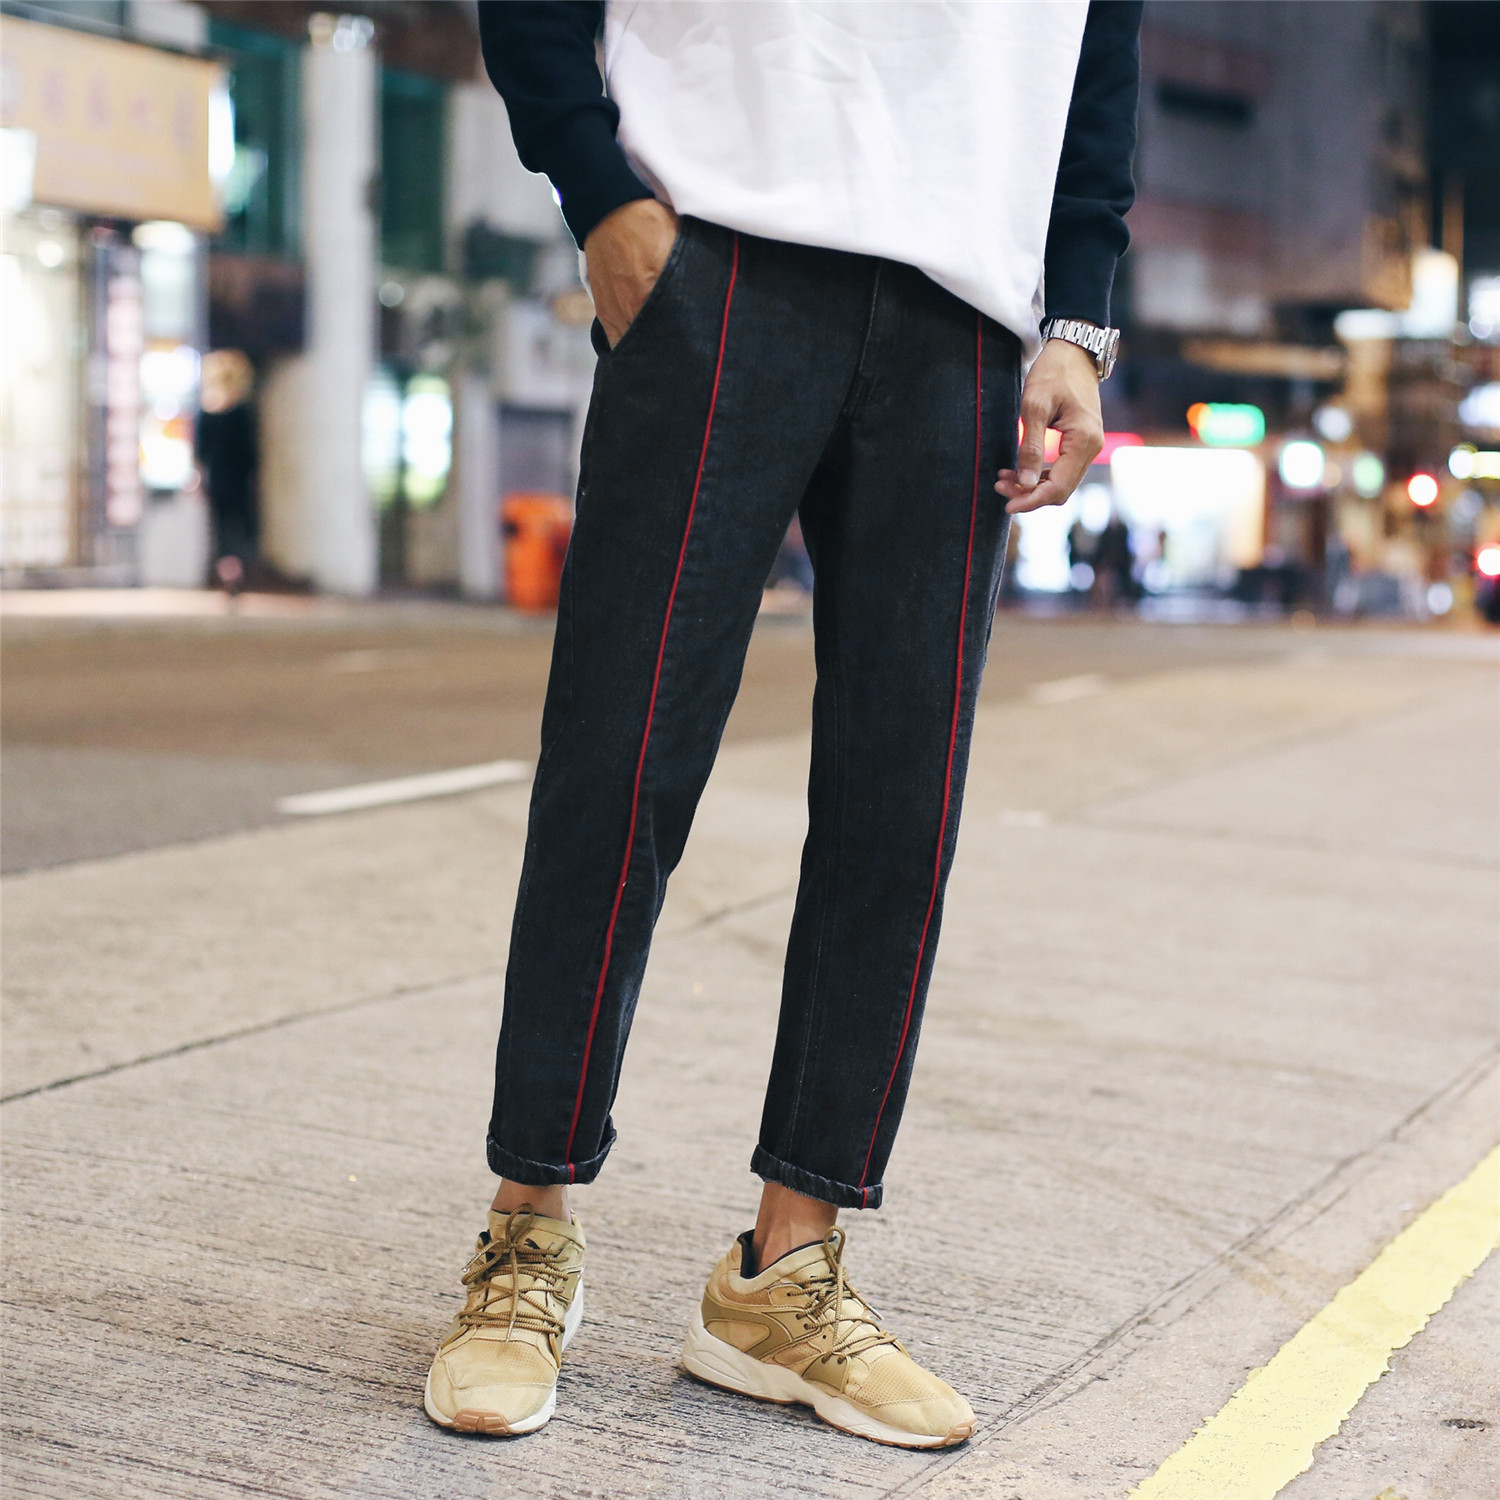 MEN'S Sports Pants Casual Pants Male STUDENT'S Loose-Fit Sweatpants Ankle Banded Pants Men's Teenager Loose-Fit Skinny Pants Spr